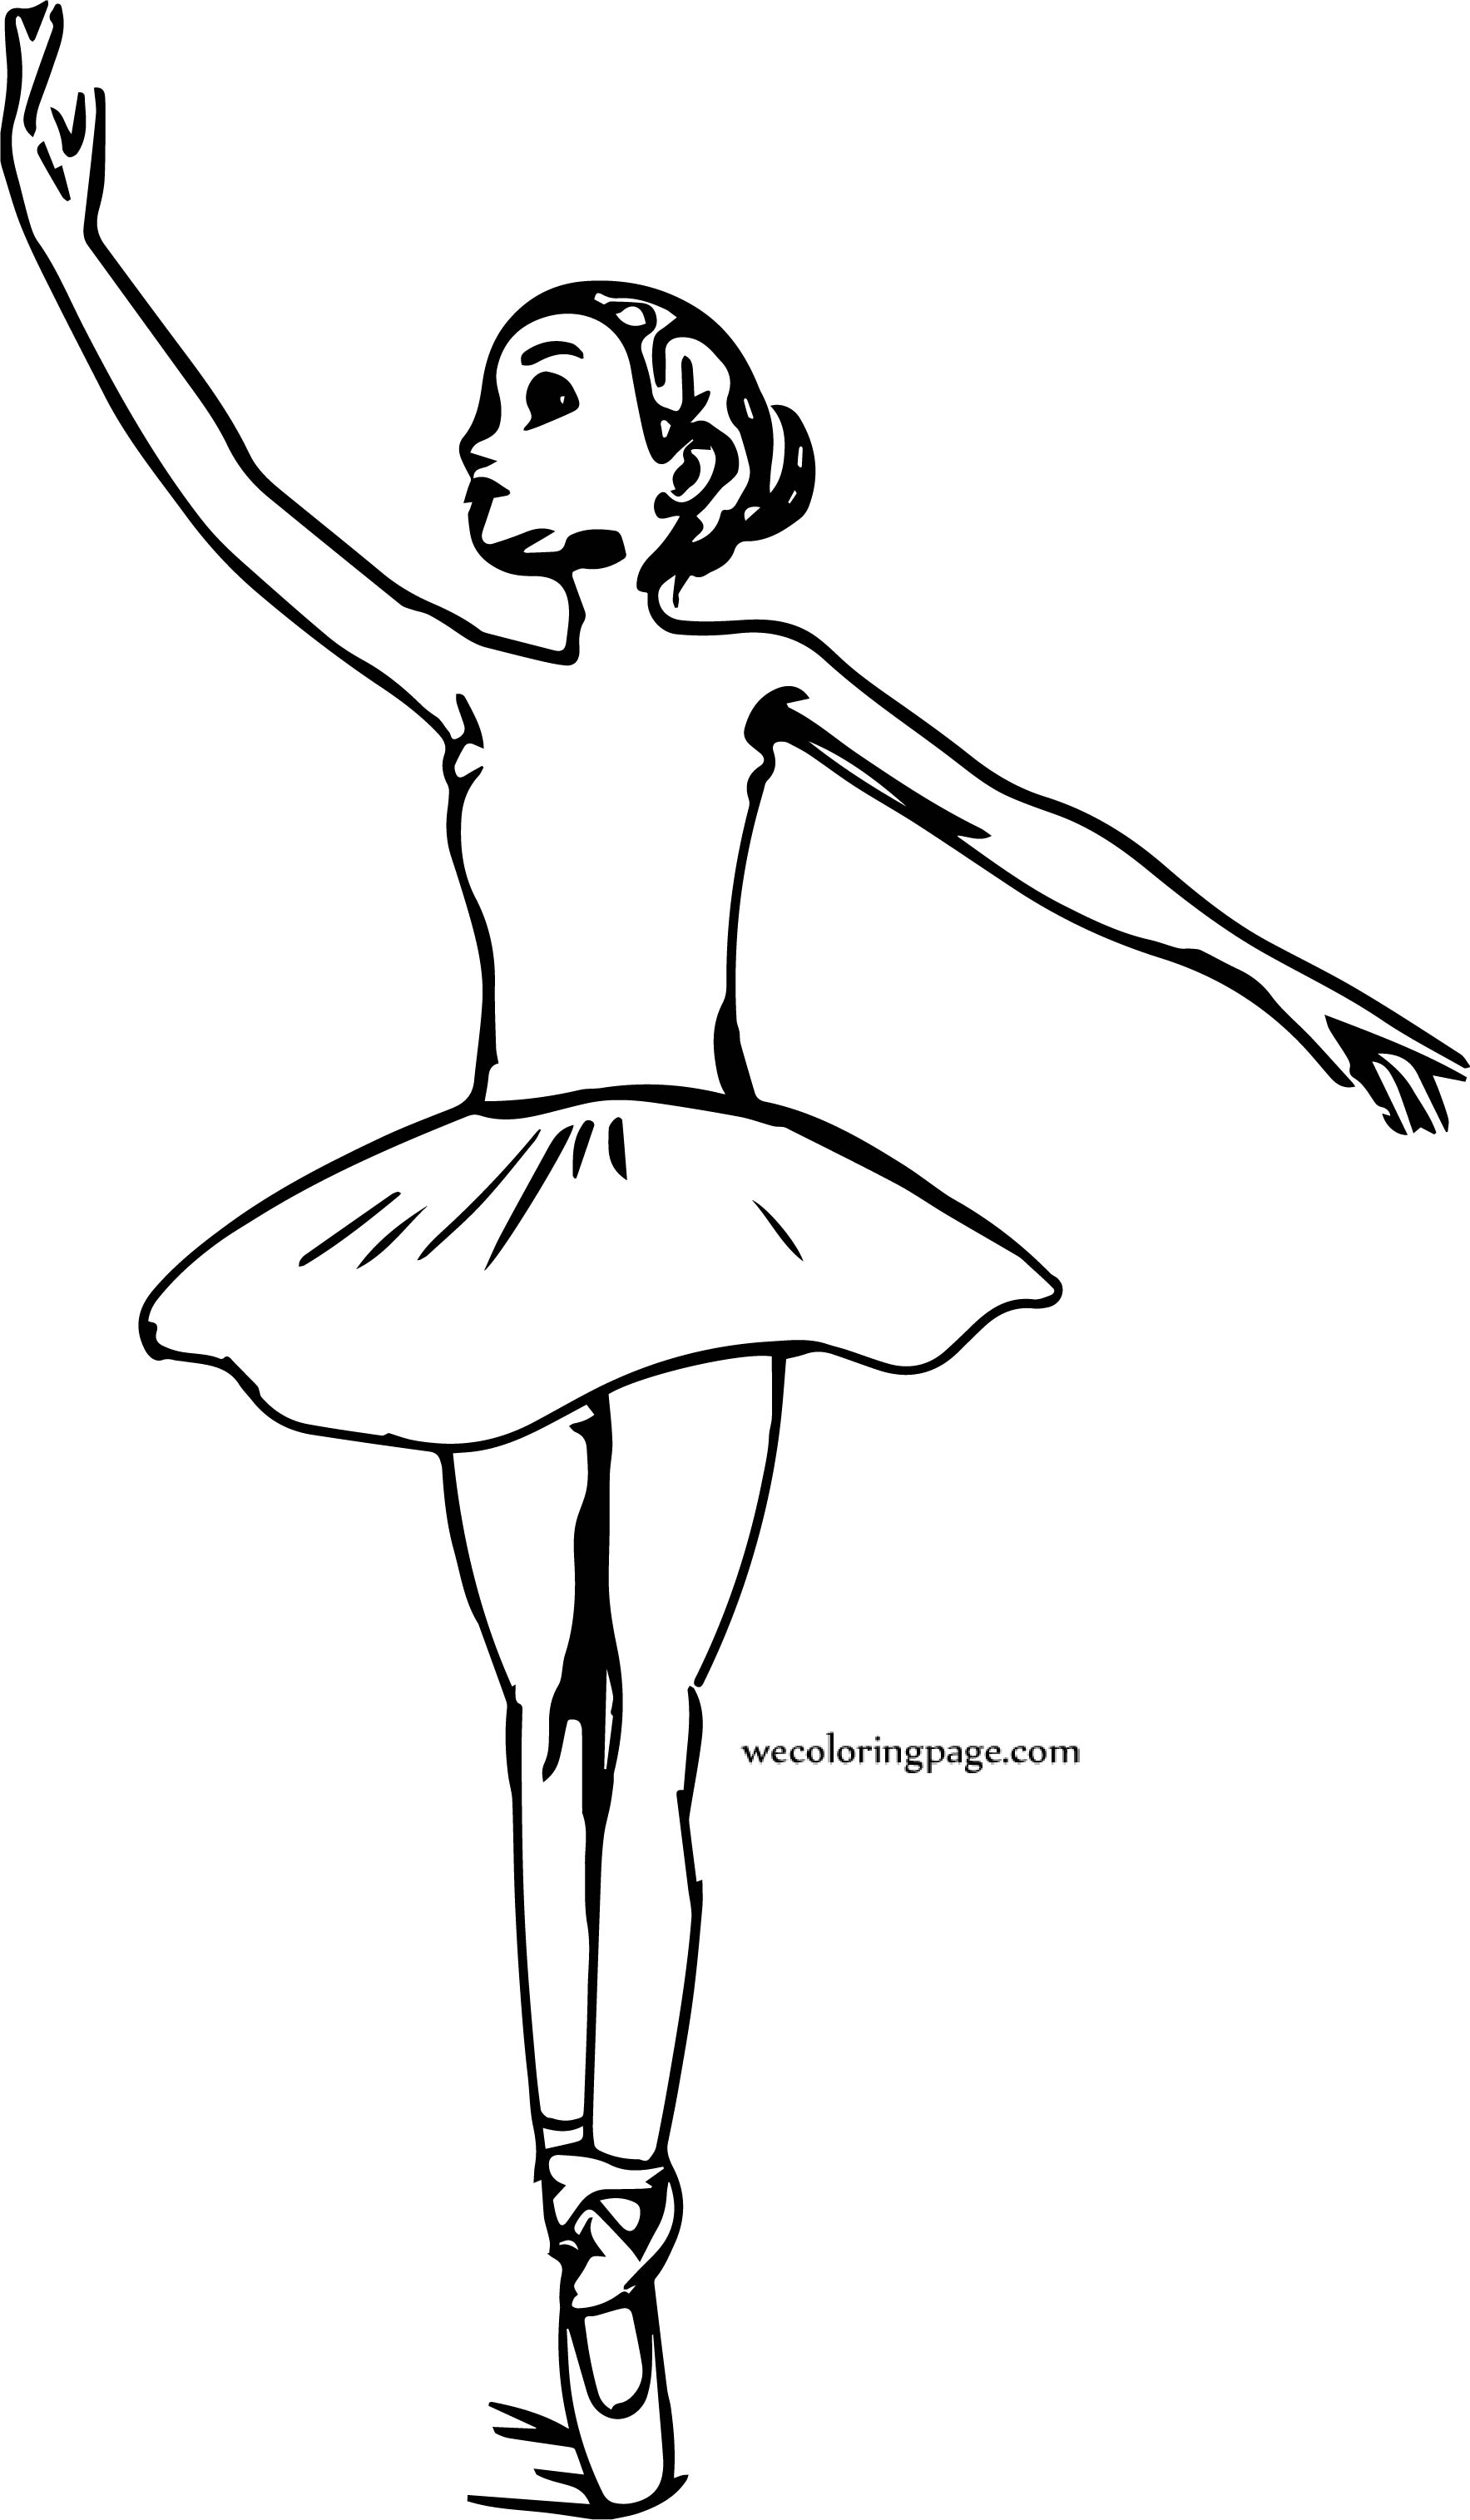 The Ballerina Girl Coloring Page